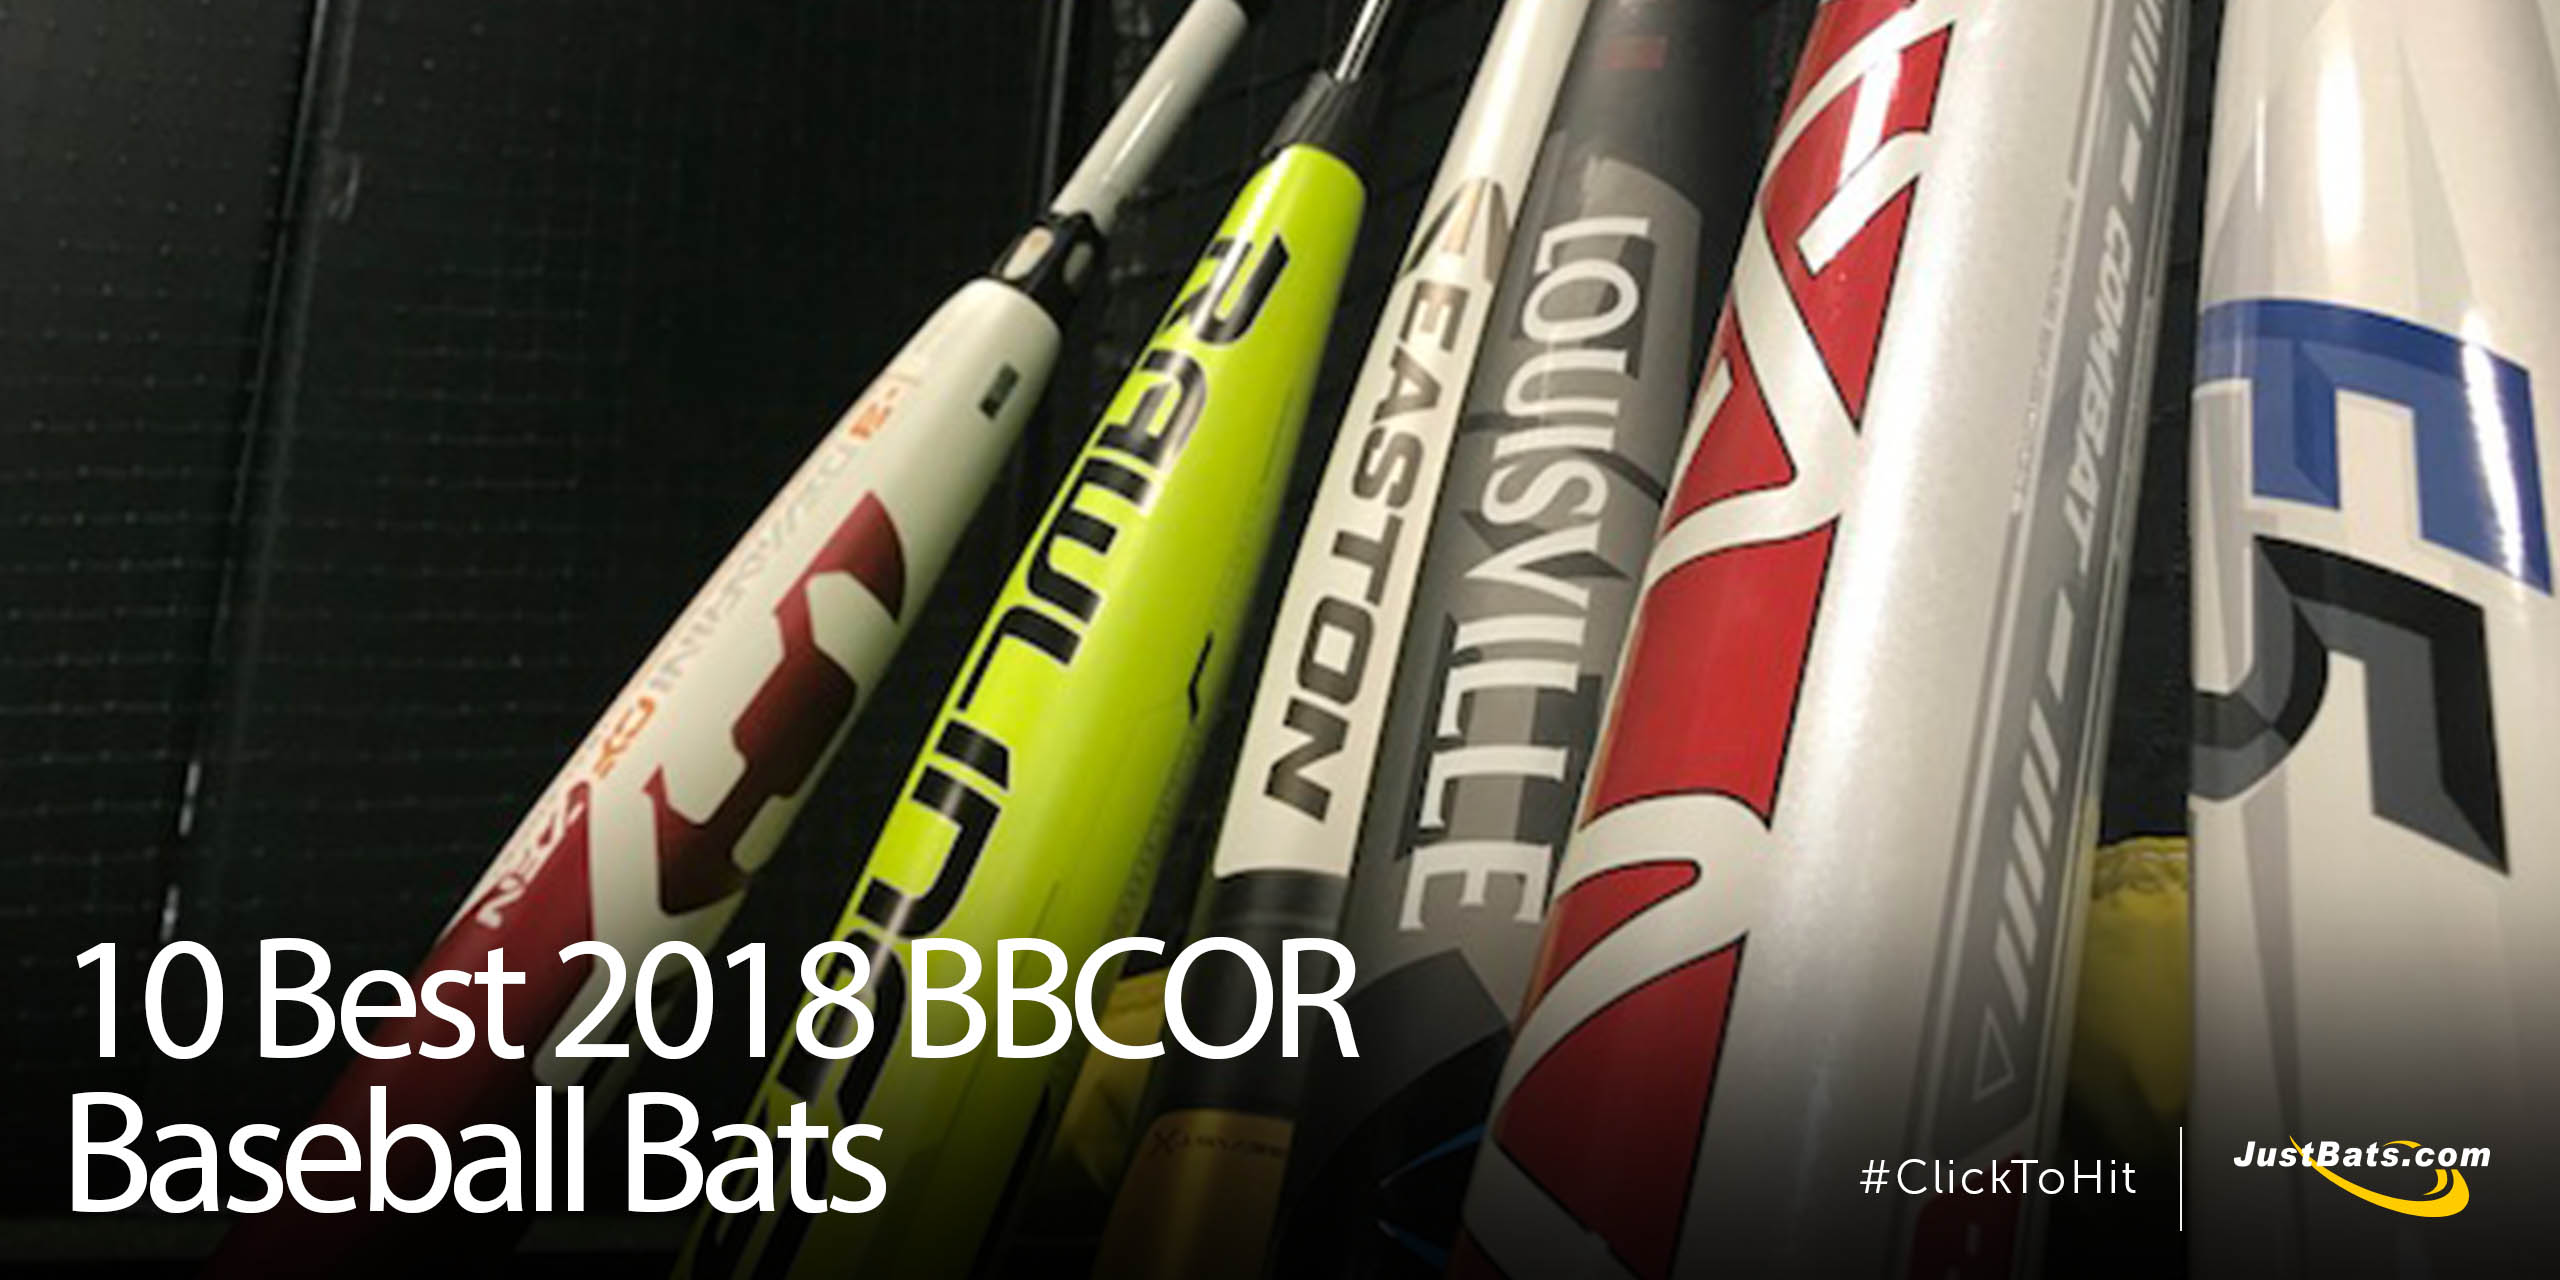 10 Best 2018 BBCOR Bats - Blog.jpg